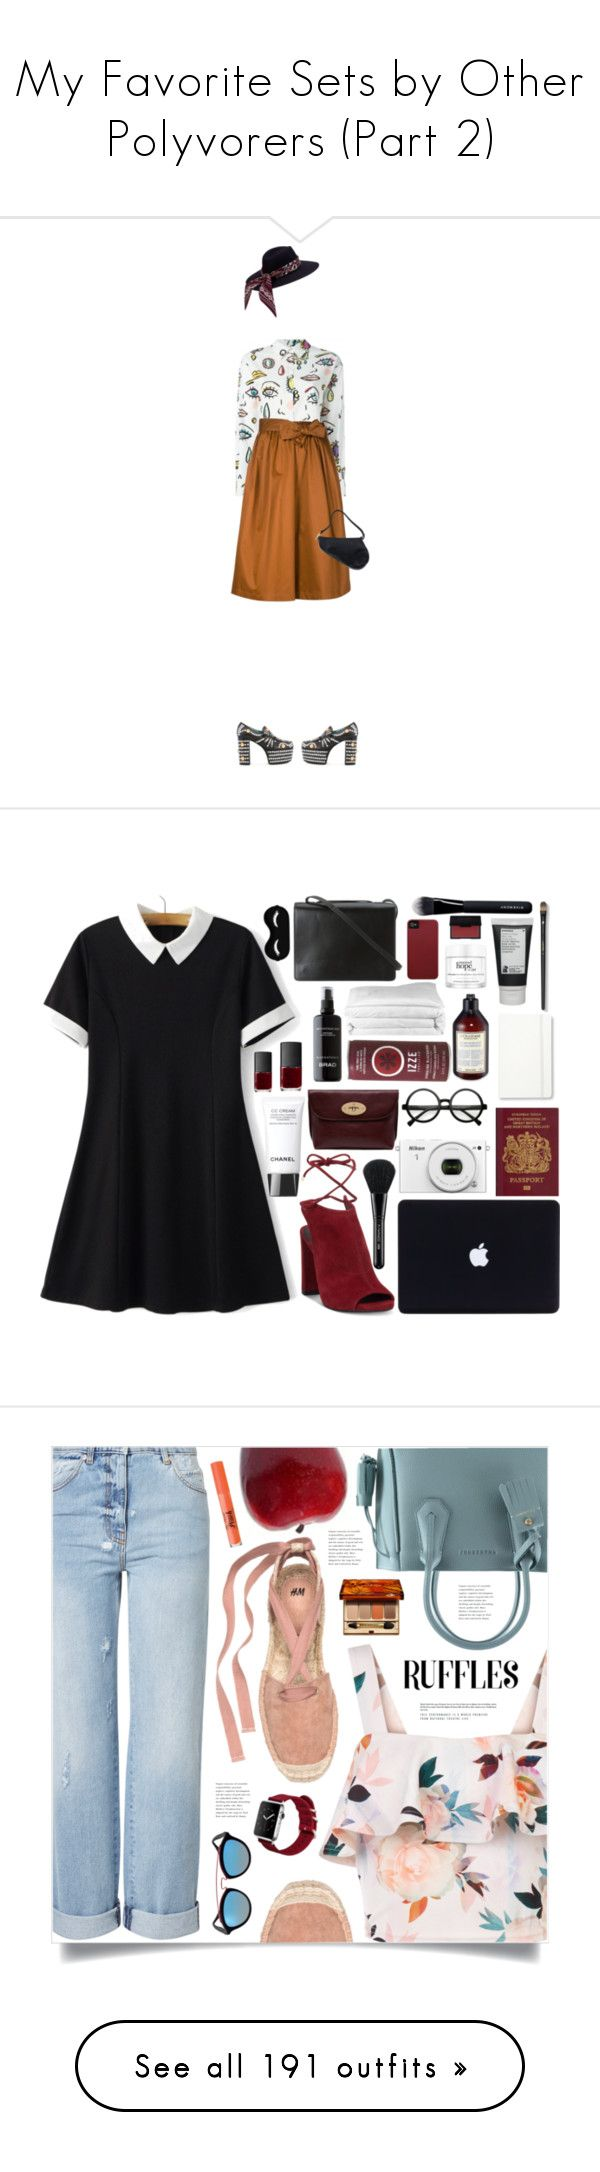 """My Favorite Sets by Other Polyvorers (Part 2)"" by mormon-girl ❤ liked on Polyvore featuring Gucci, Boutique Moschino, Tome, Christian Dior, Dior, prints, hermes, gucci, culottes and Retrò"